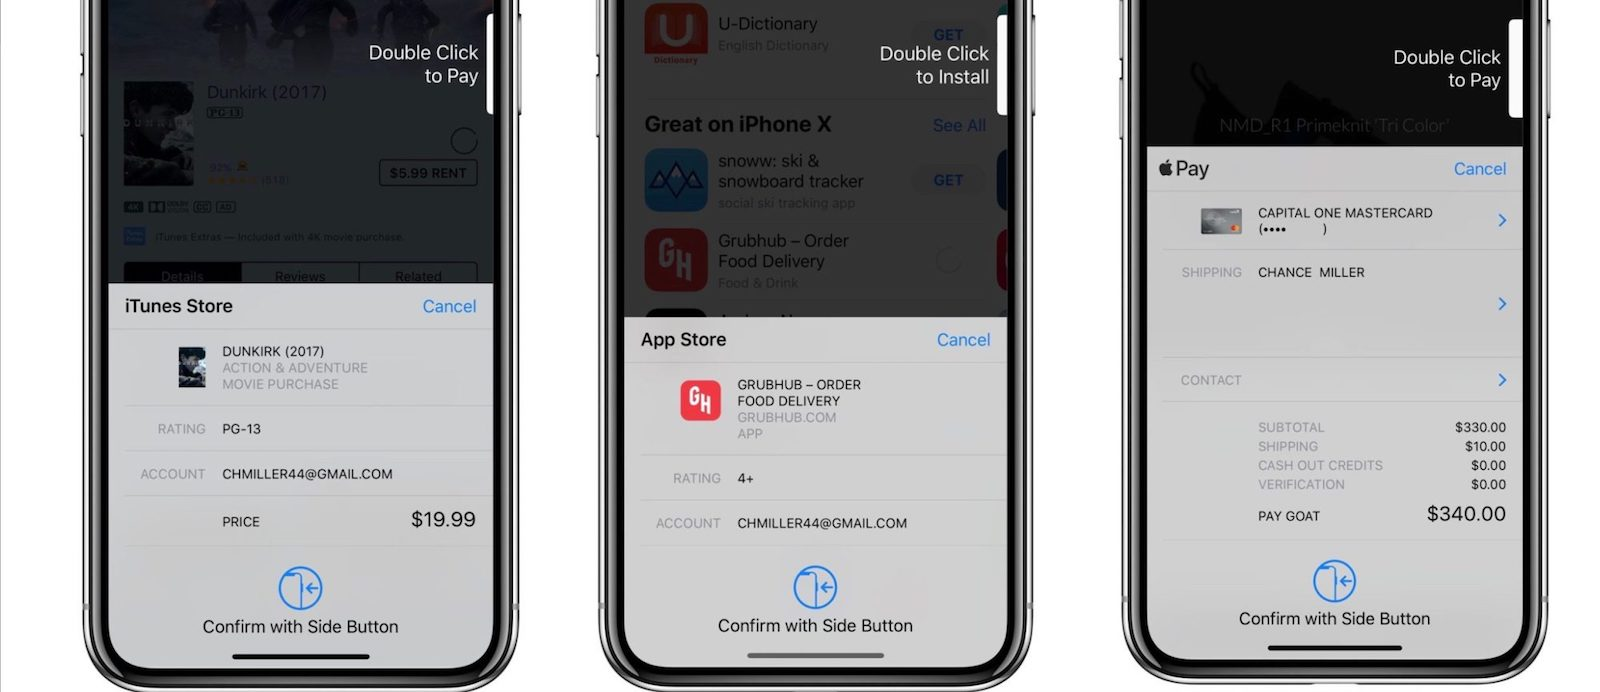 Side-Button-Click-for-App-Store.jpg